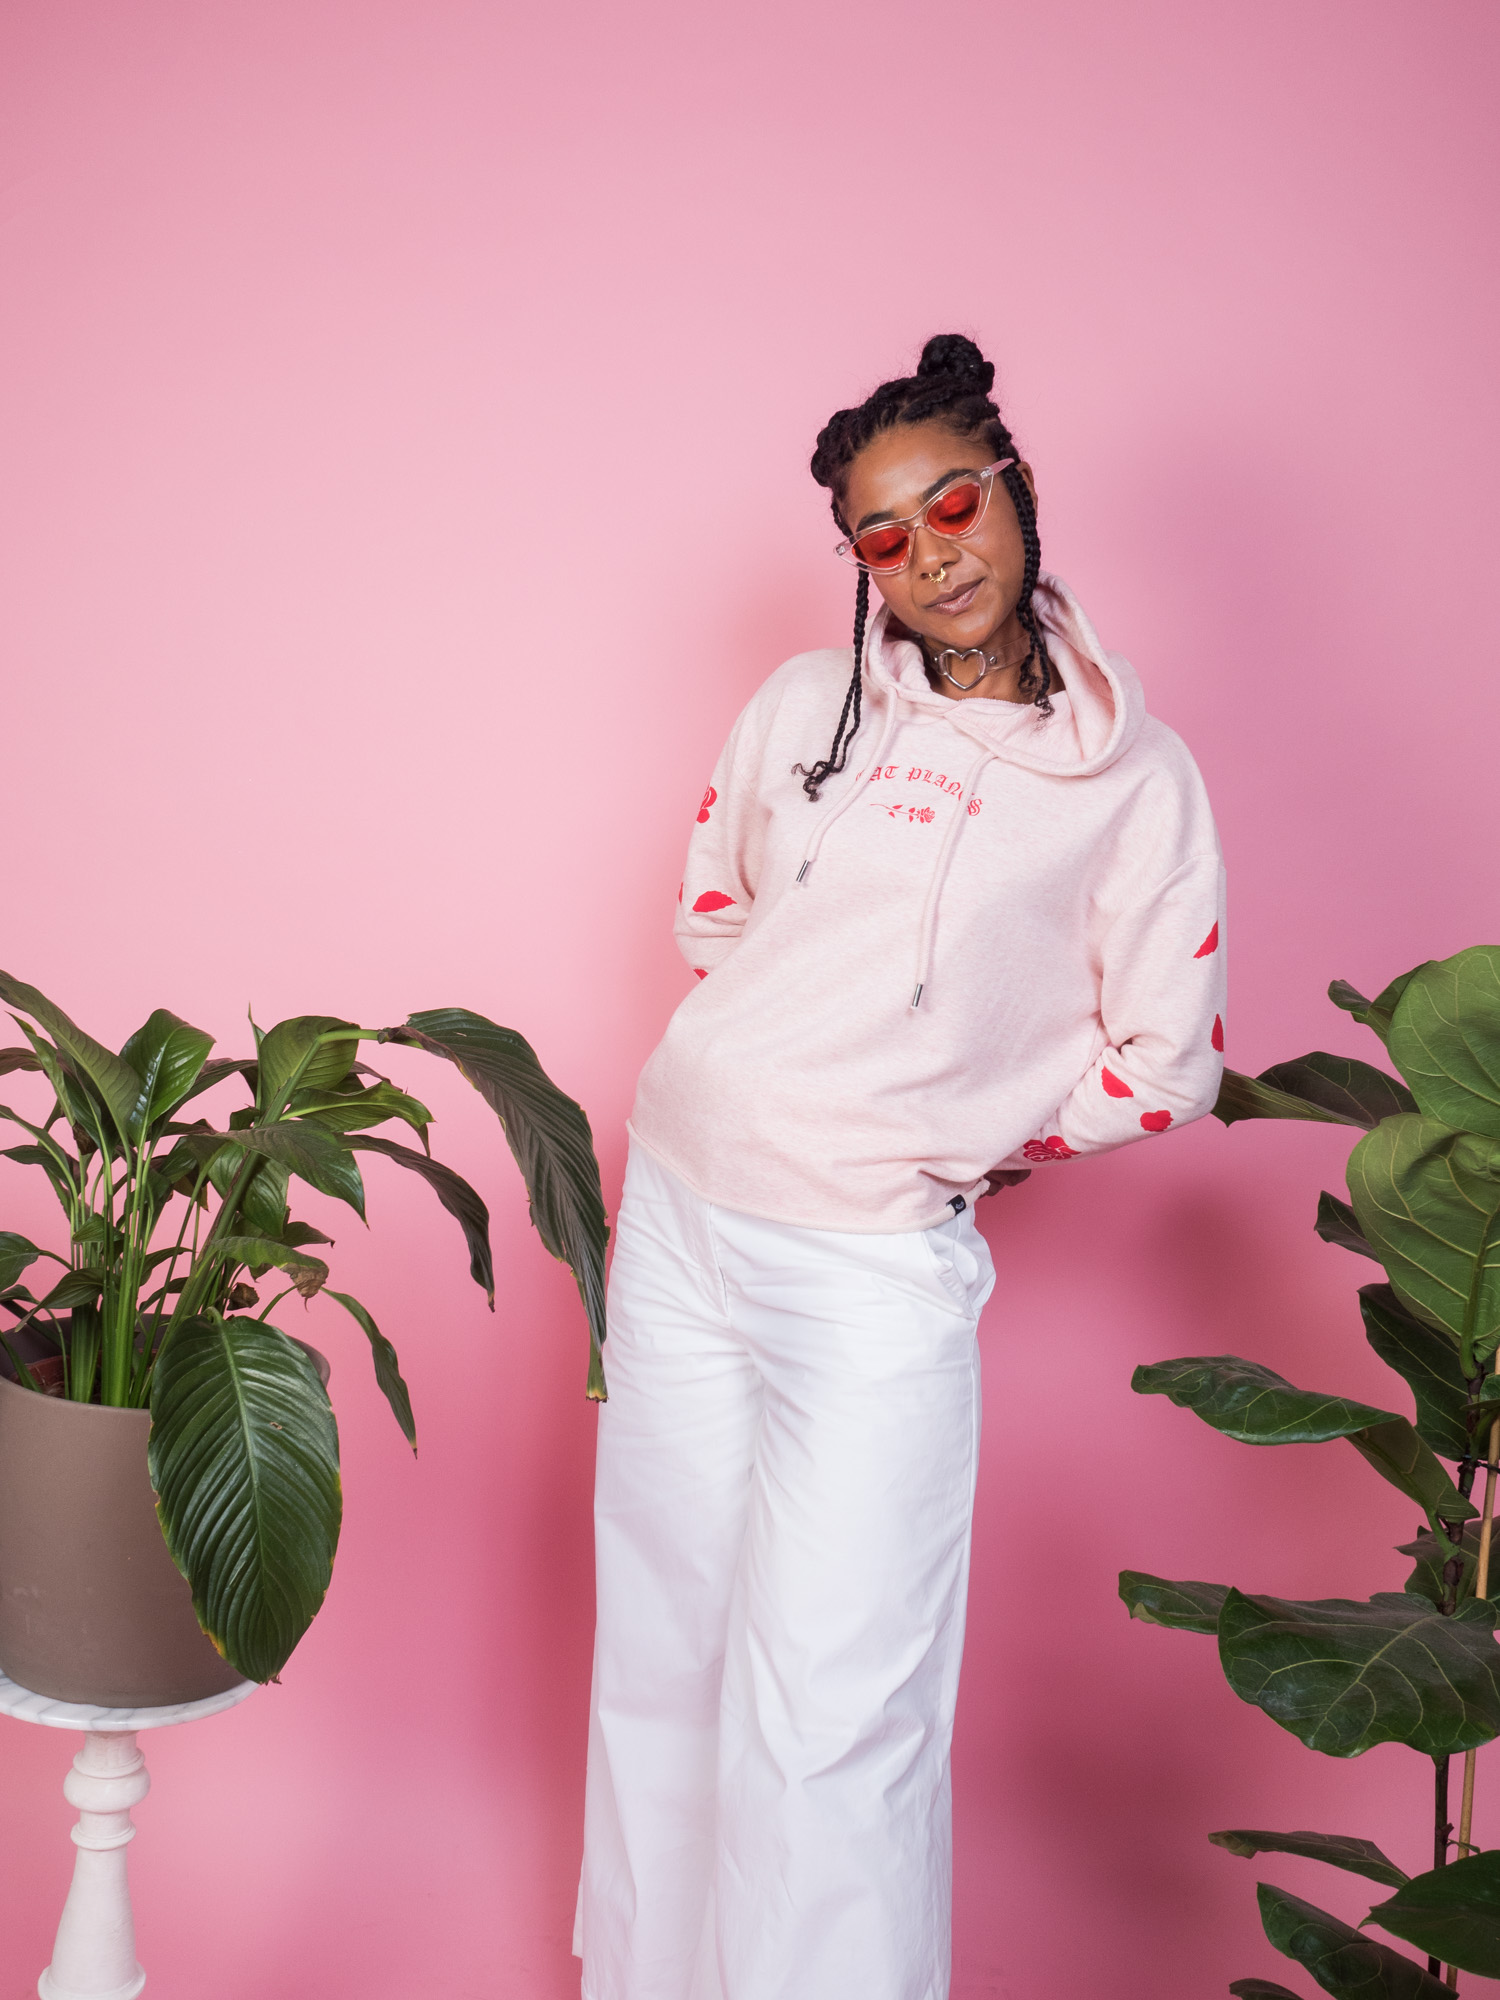 www.plantfacedclothing.com   So happy to introduce my first brand interview!